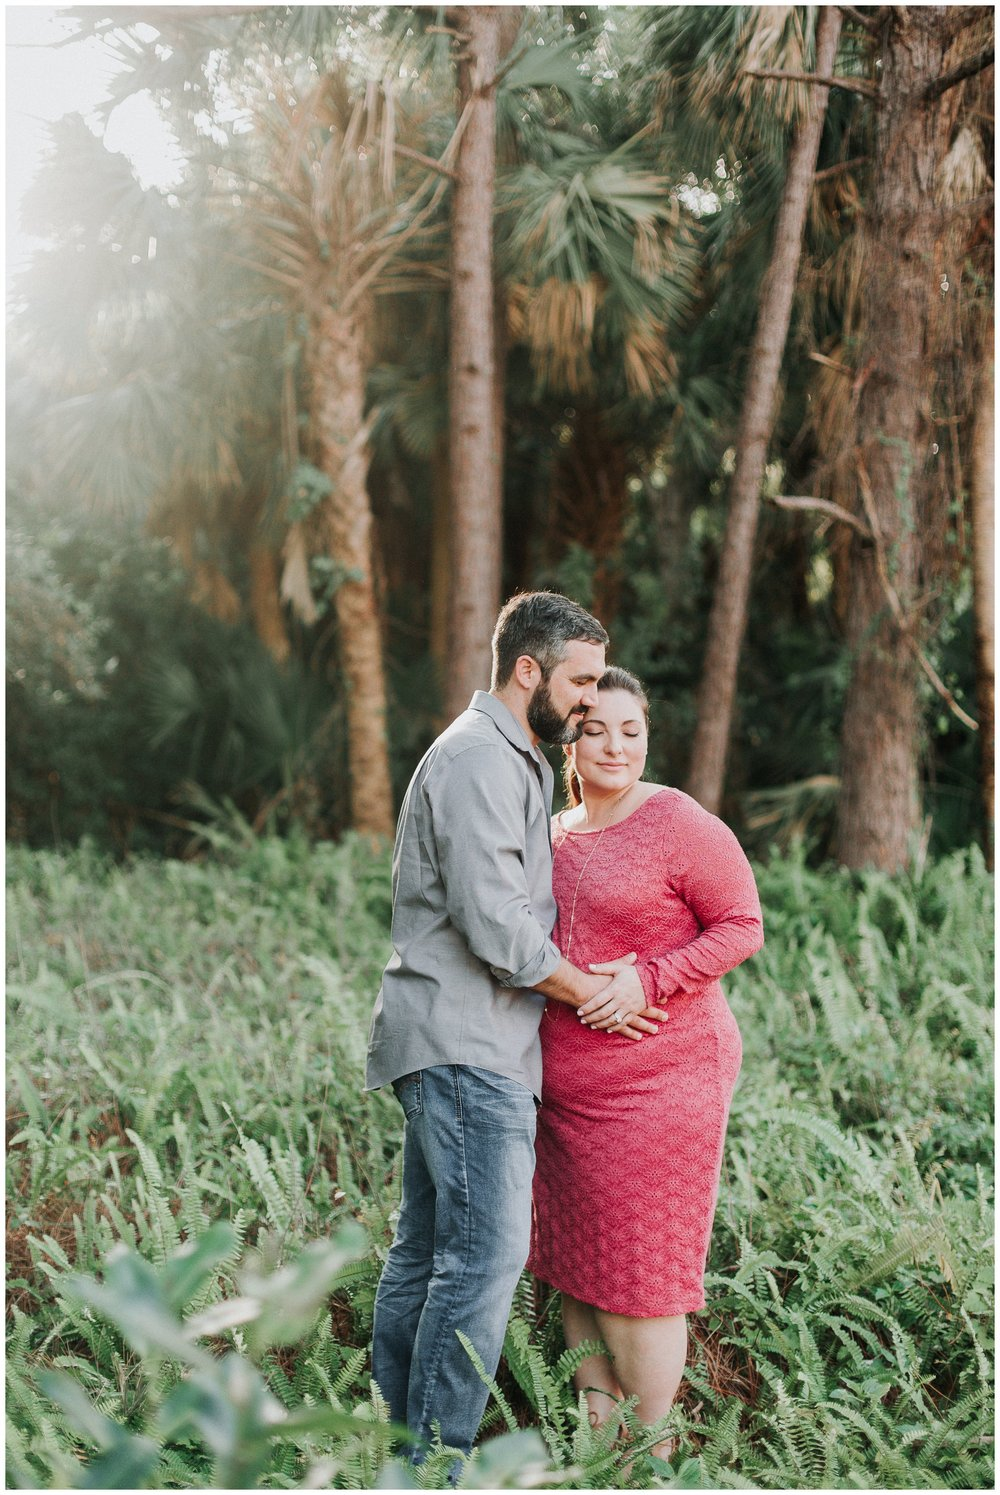 Kimberly Smith Photography- Sugar Sand Park- Sugar Sand Park Maternity Photos- Boca Raton Photographer- Palm Beach Photographer- Jupiter Photographer- Stuart Florida Photographer_0008.jpg